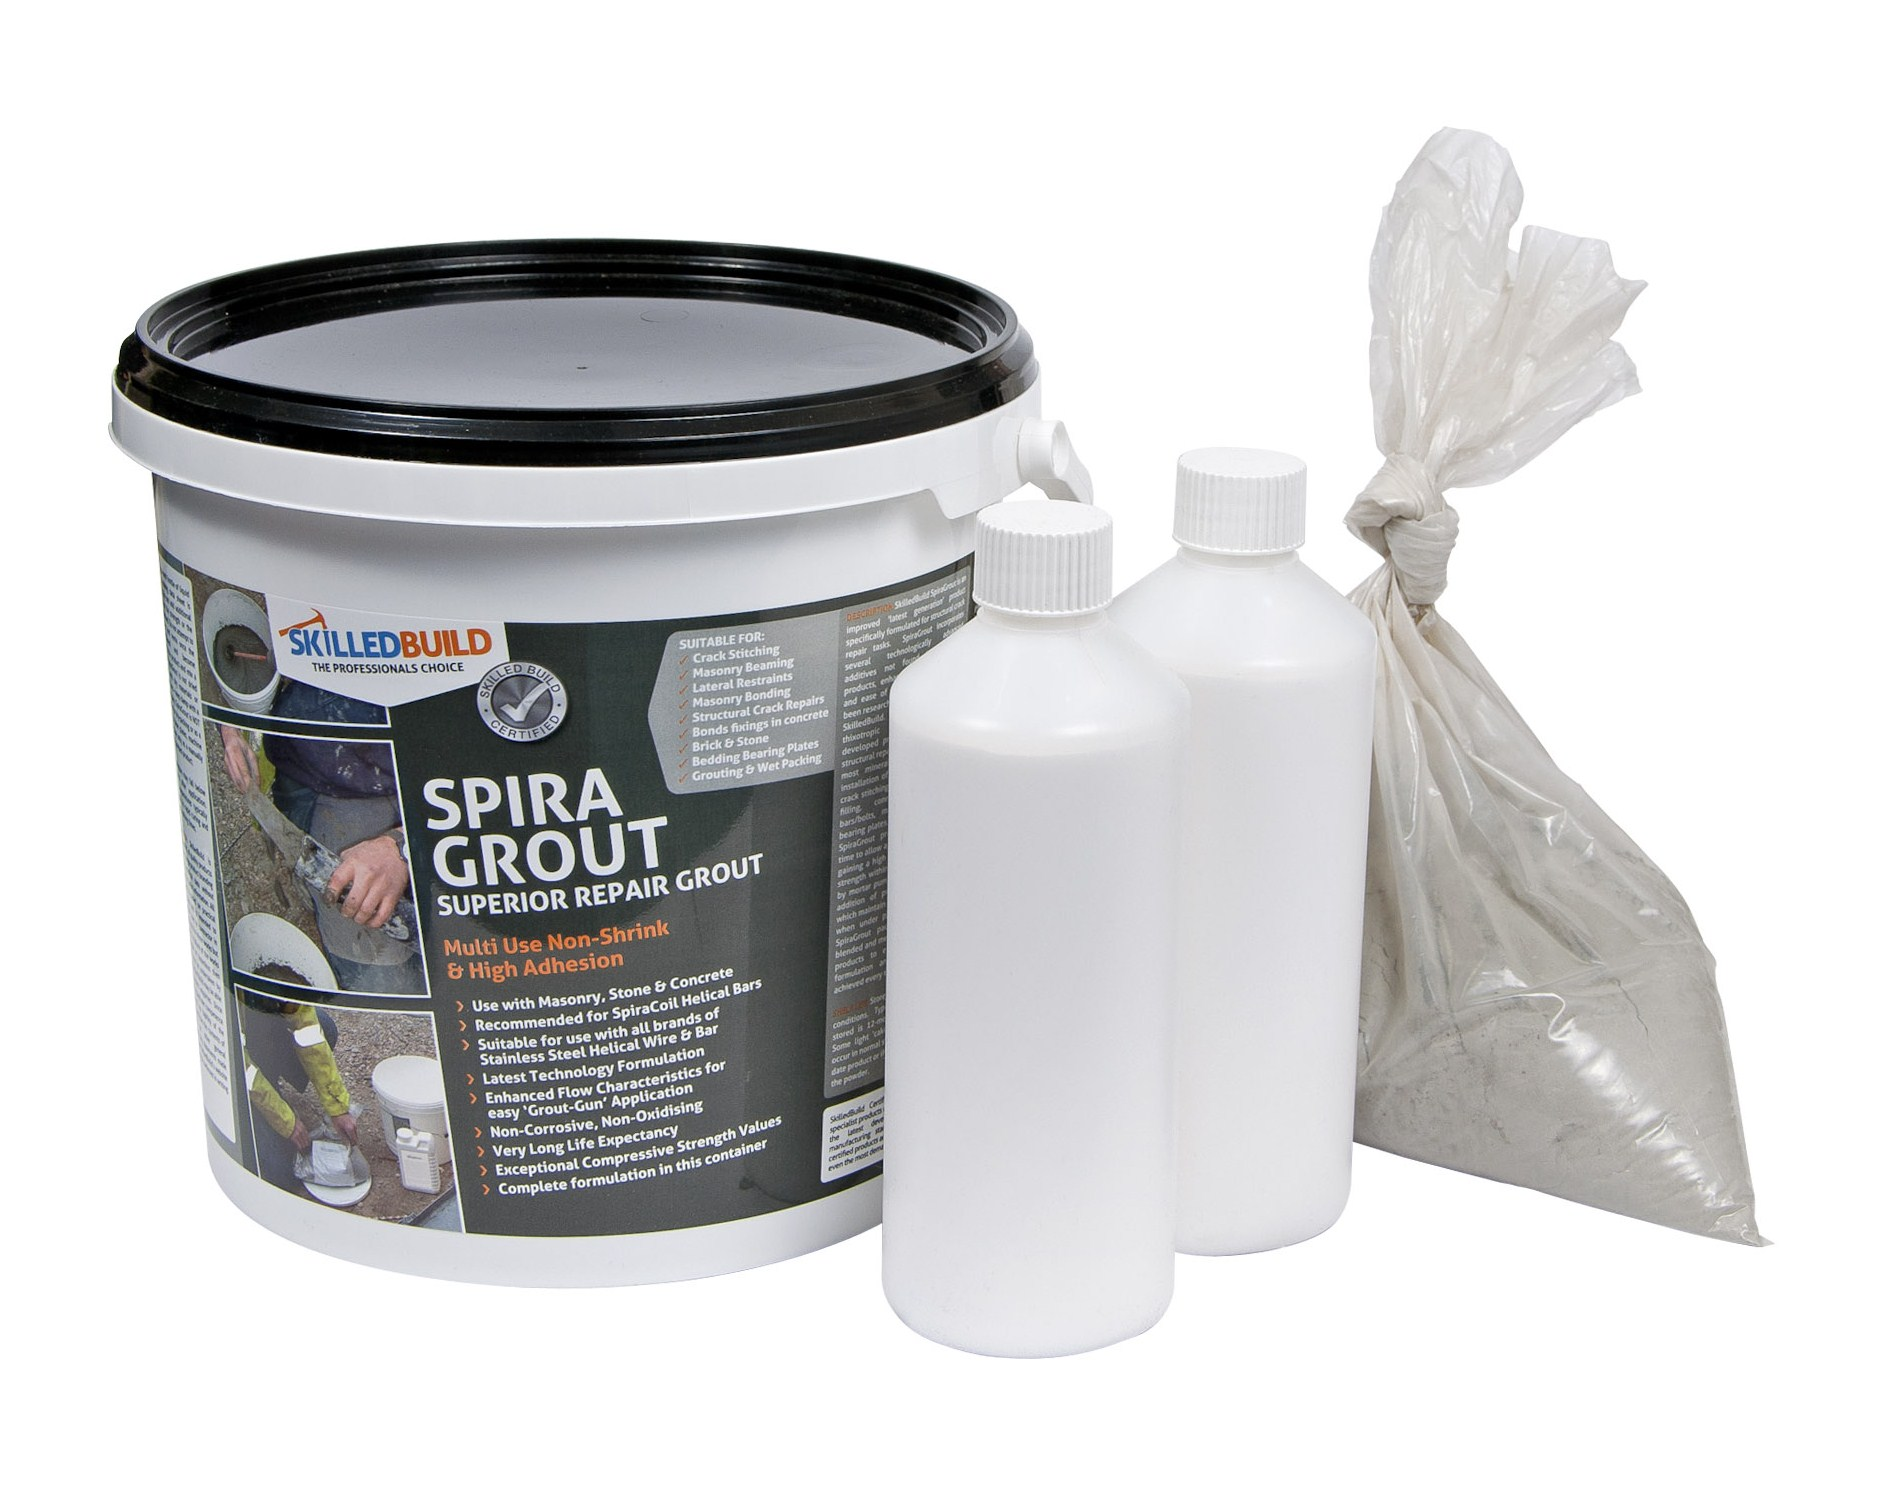 SpiraGrout Masonry Repair Grout